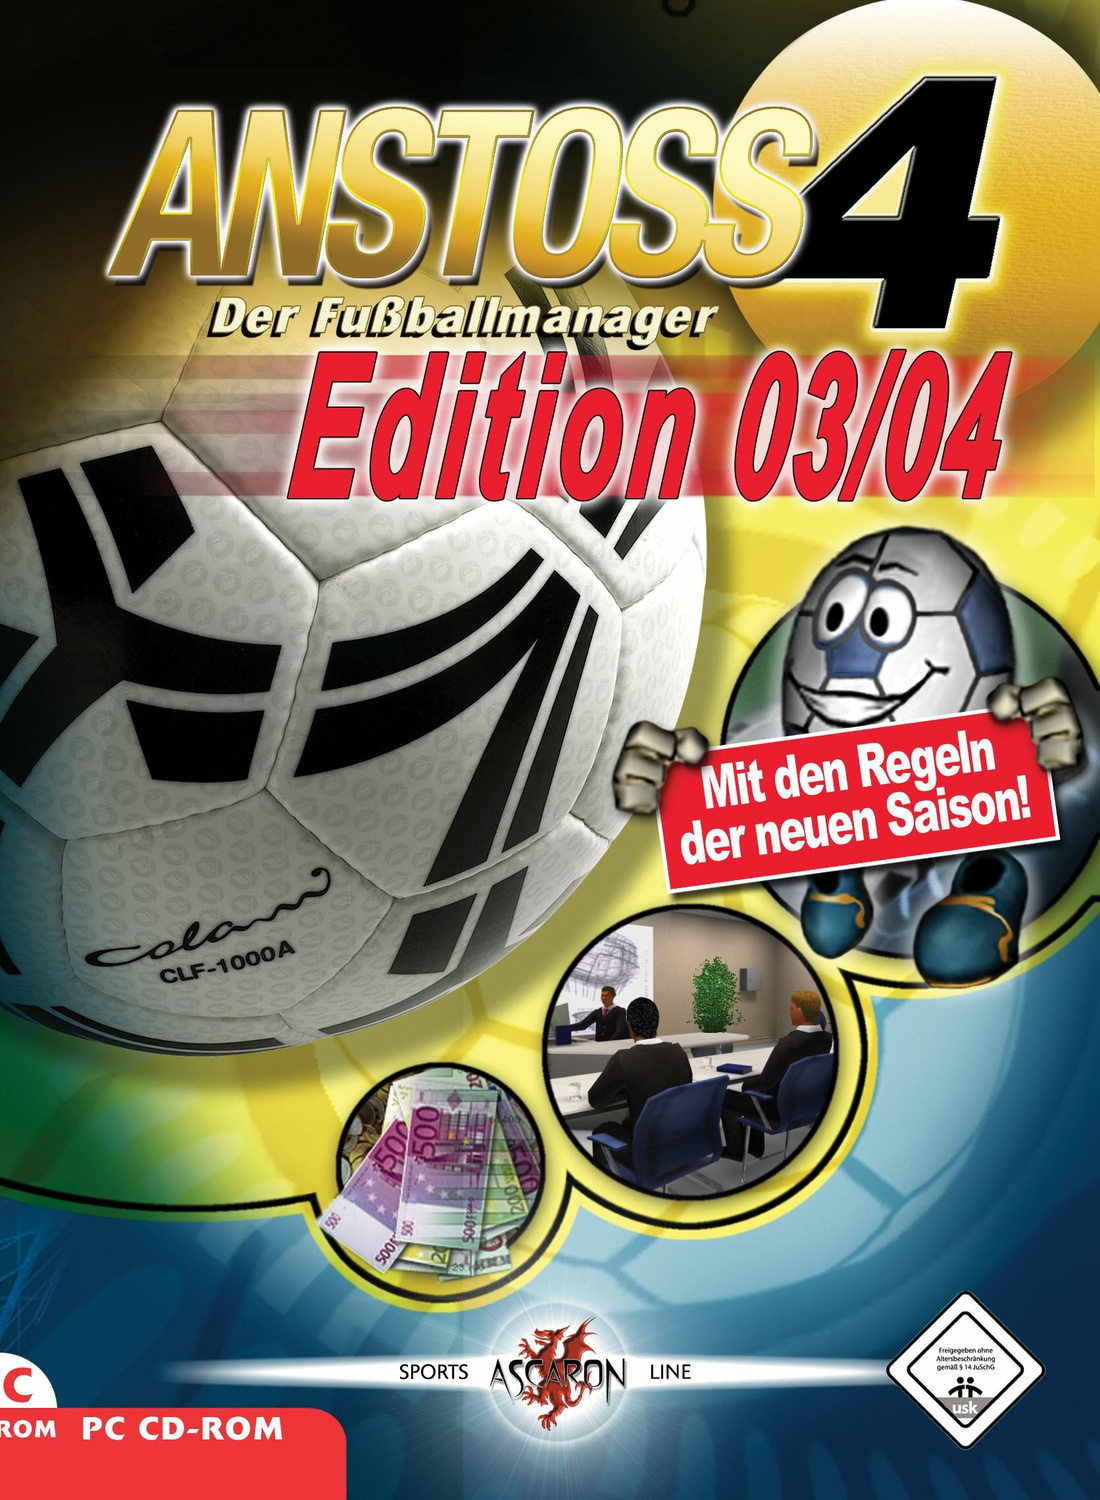 Anstoss 4 Edition 03/04